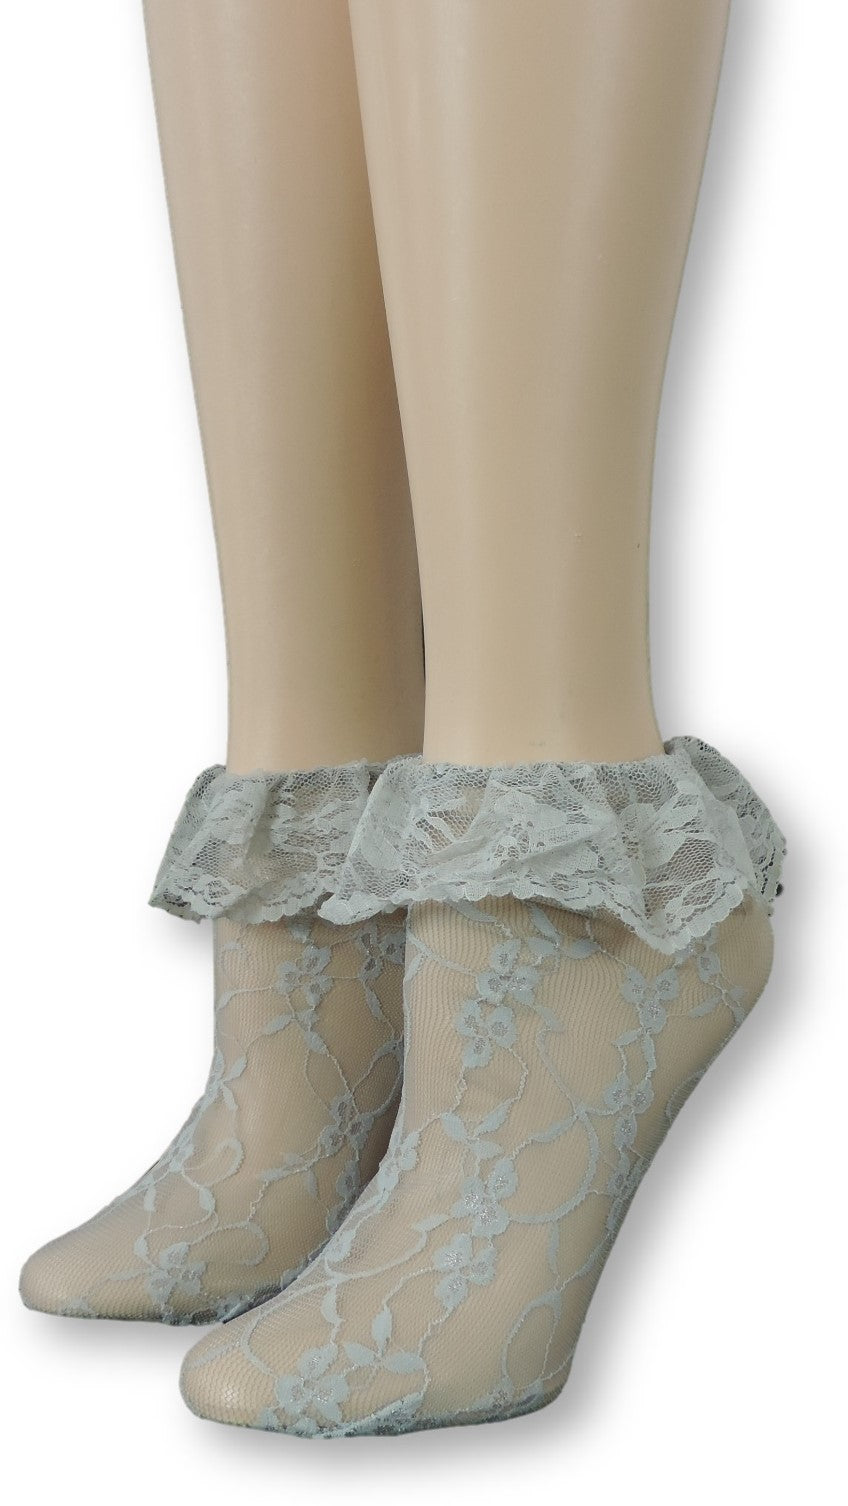 Steel Grey Mesh Socks with edging lace - Global Trendz Fashion®